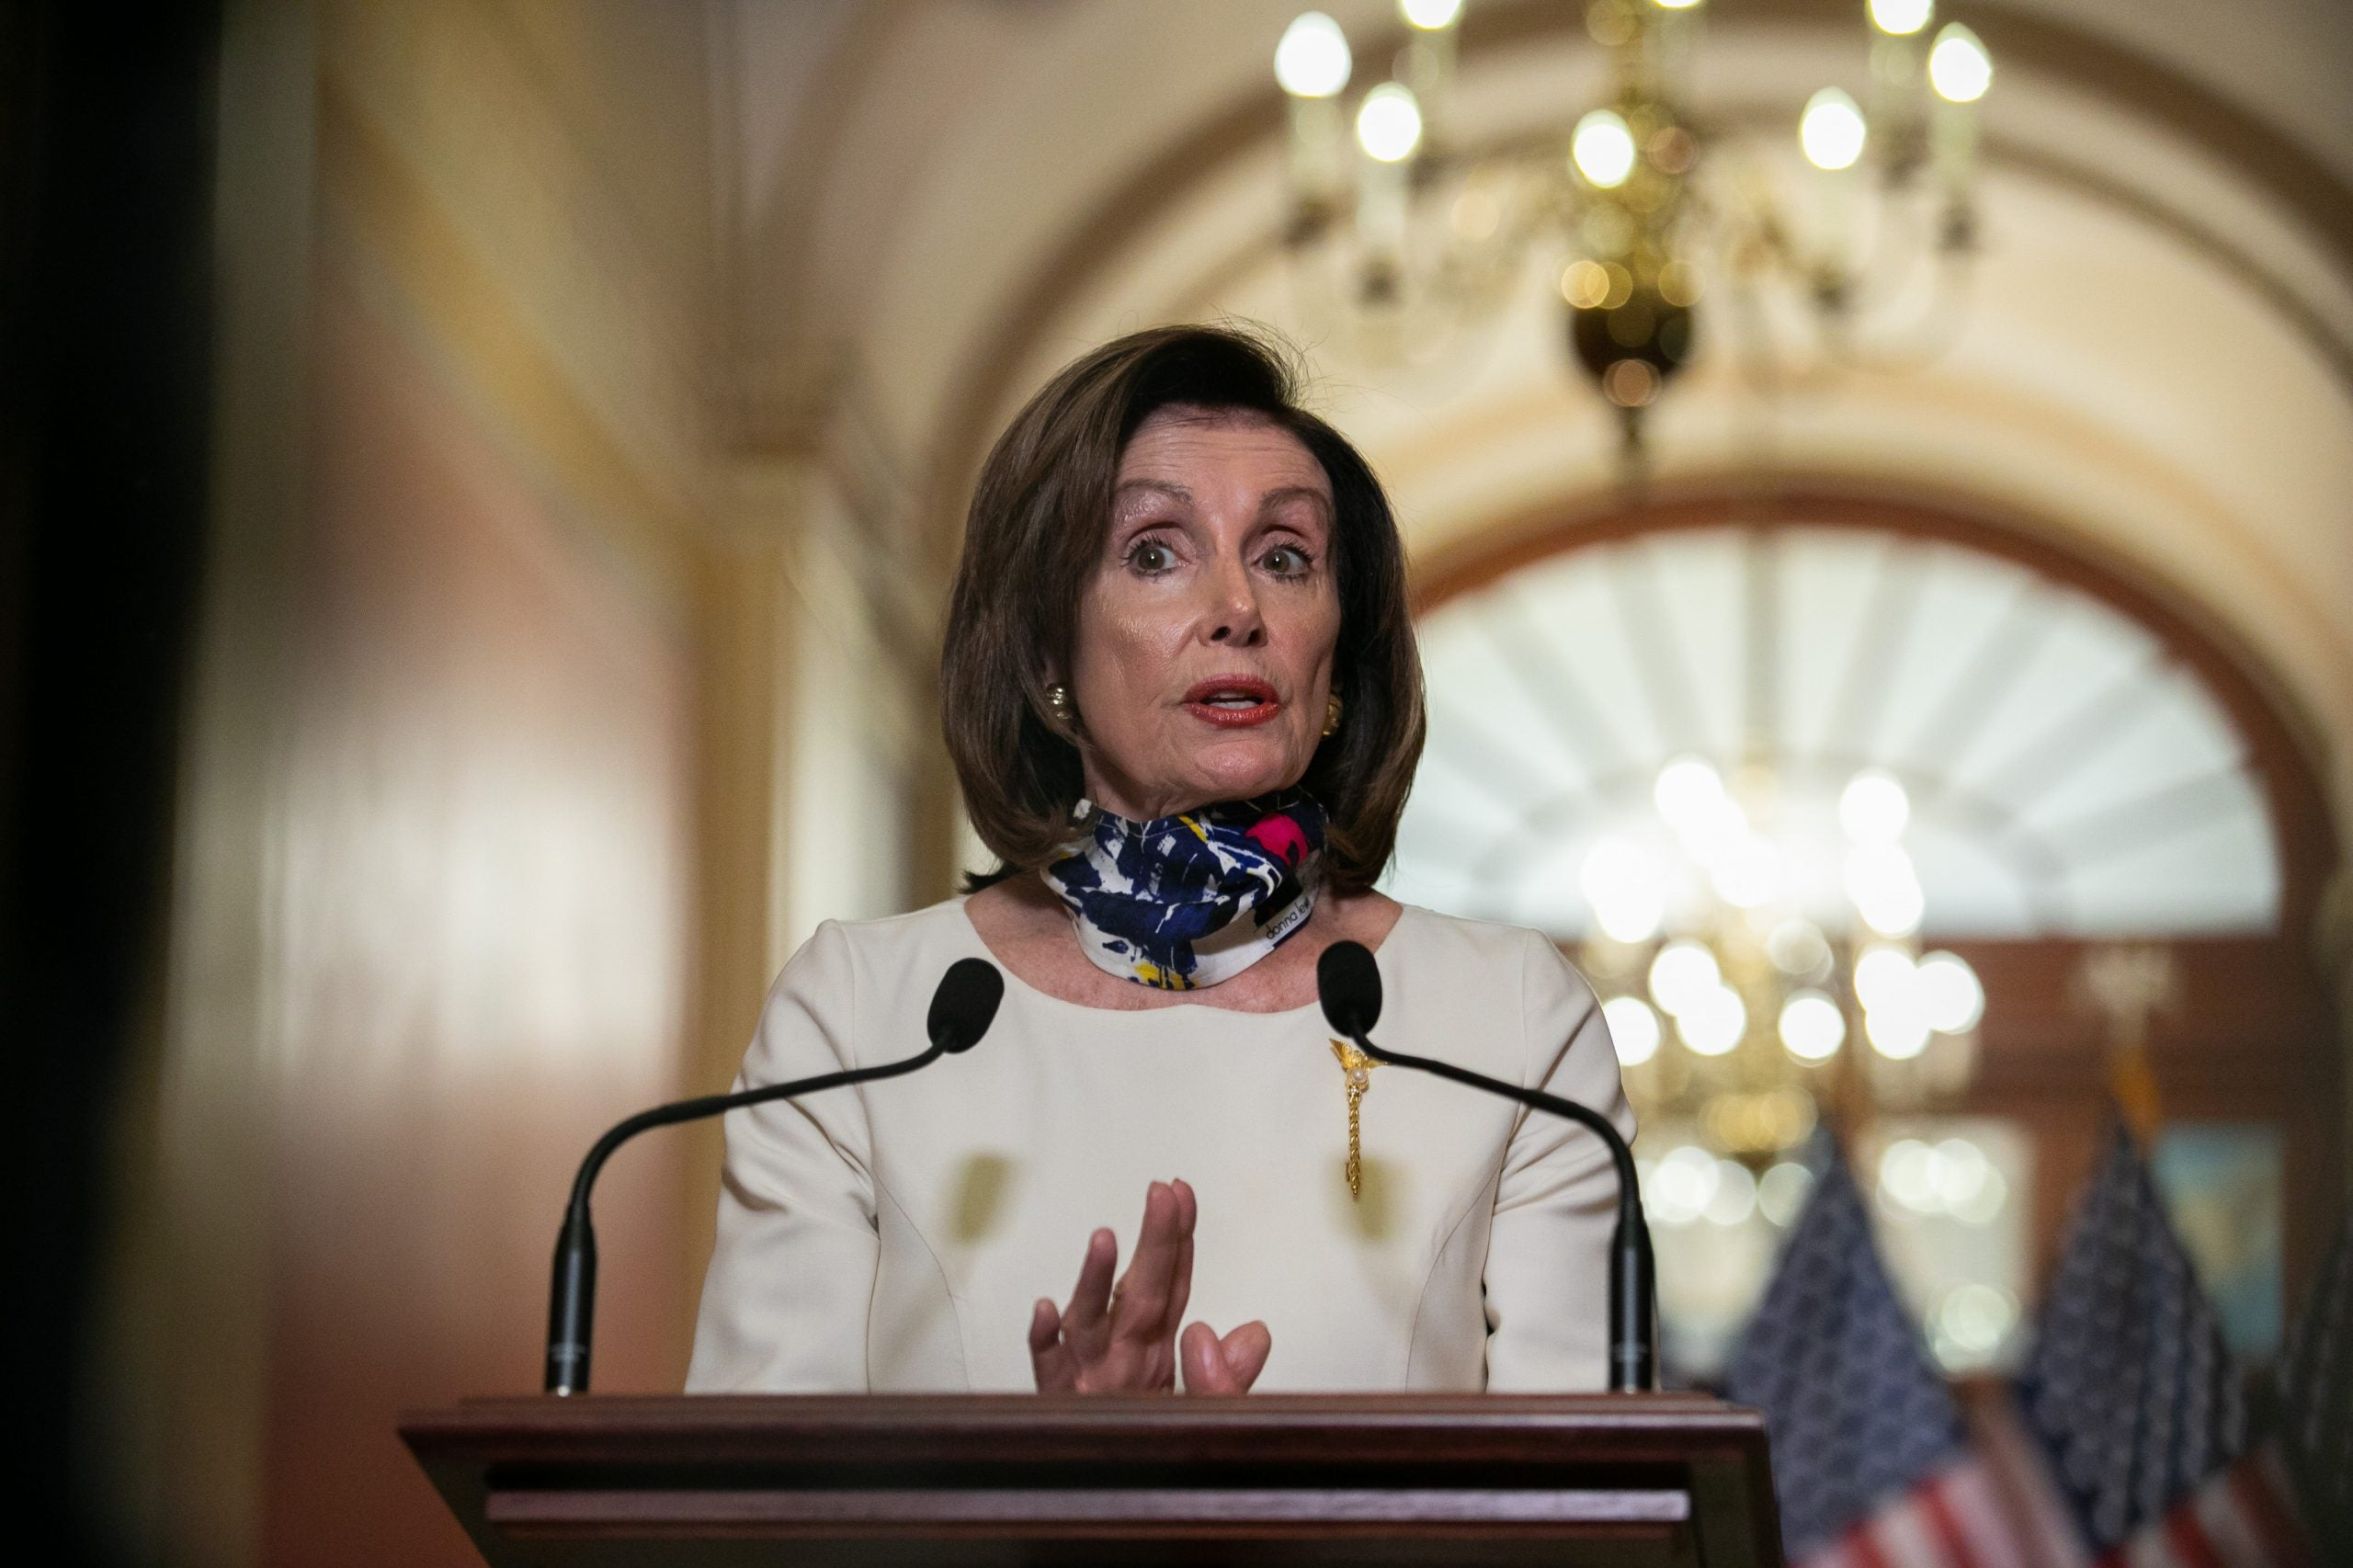 Nancy Pelosi speaks on HEROES Act weeks before the Republican stimulus proposal was unveiled.